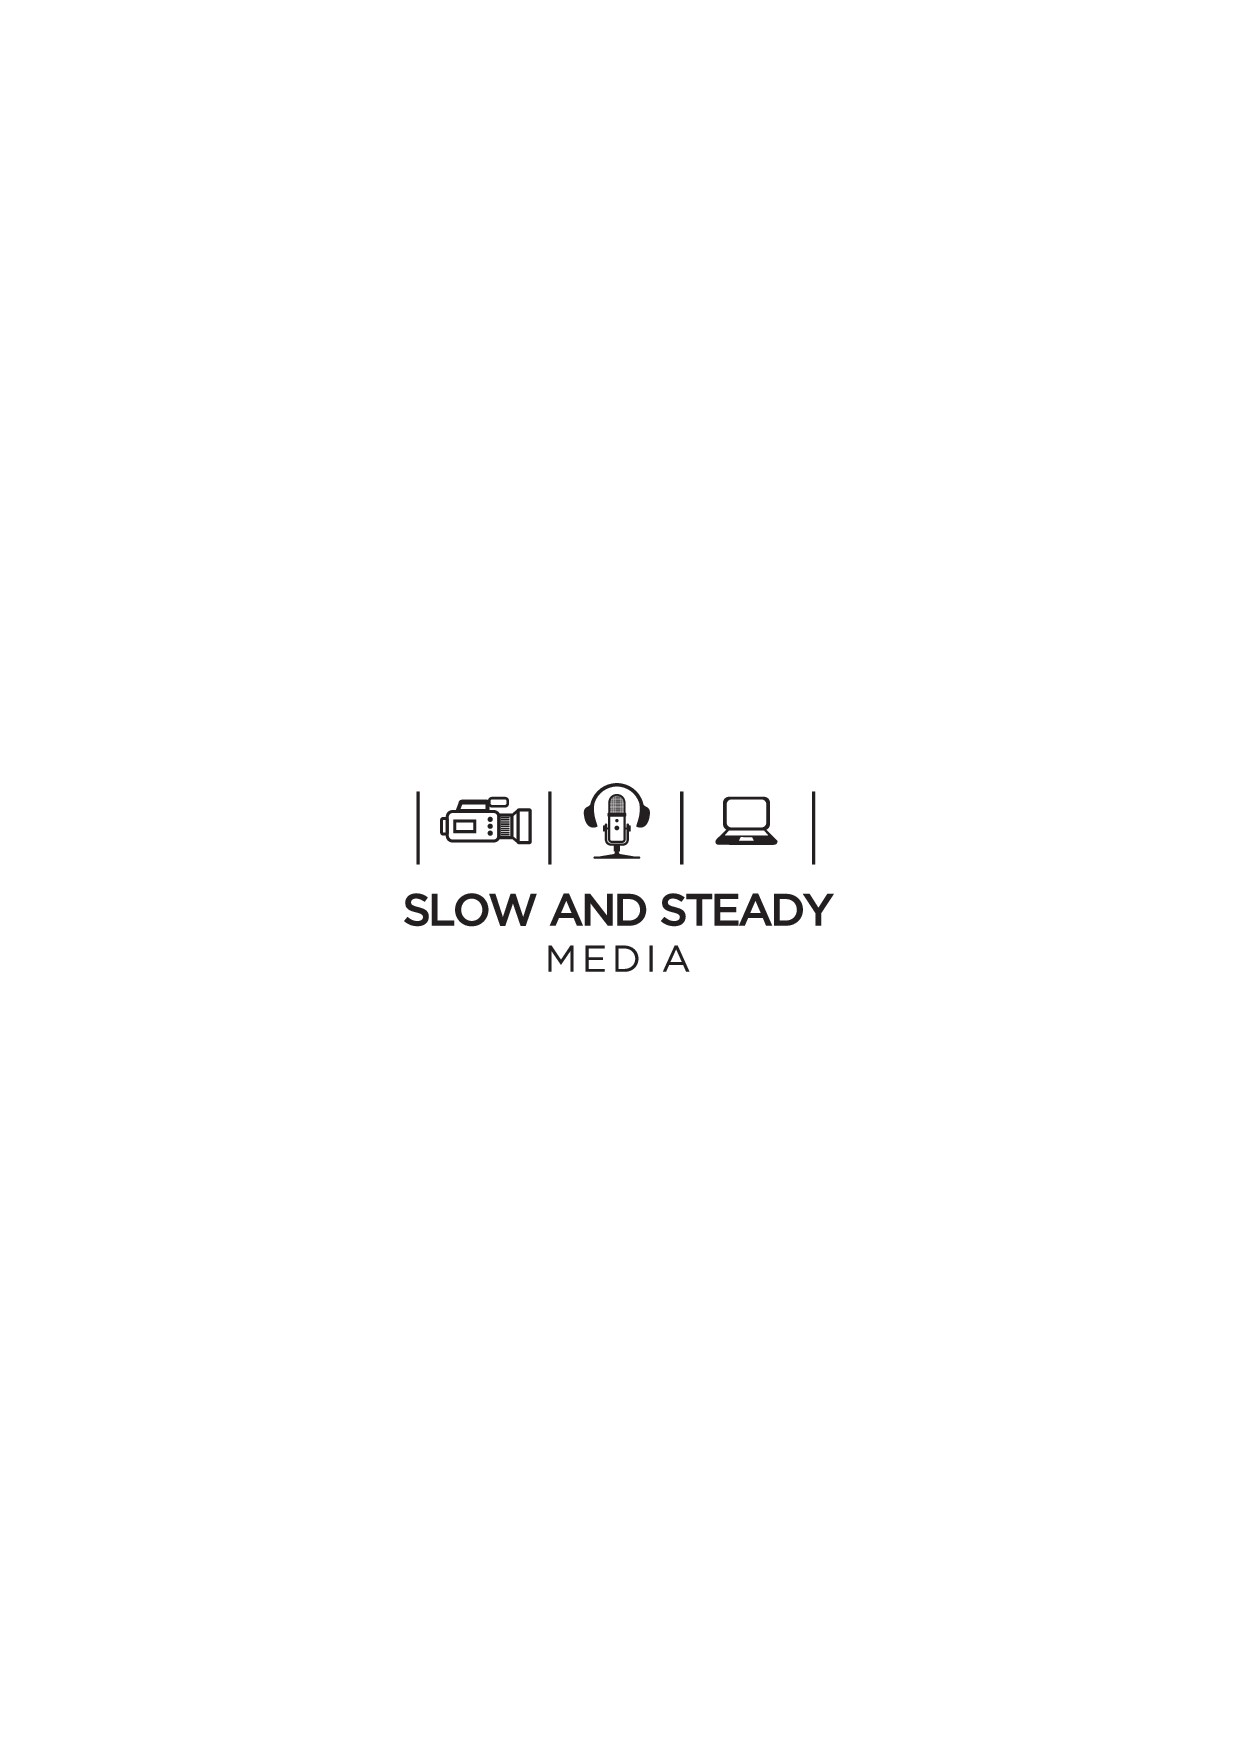 Slow And Steady logo search